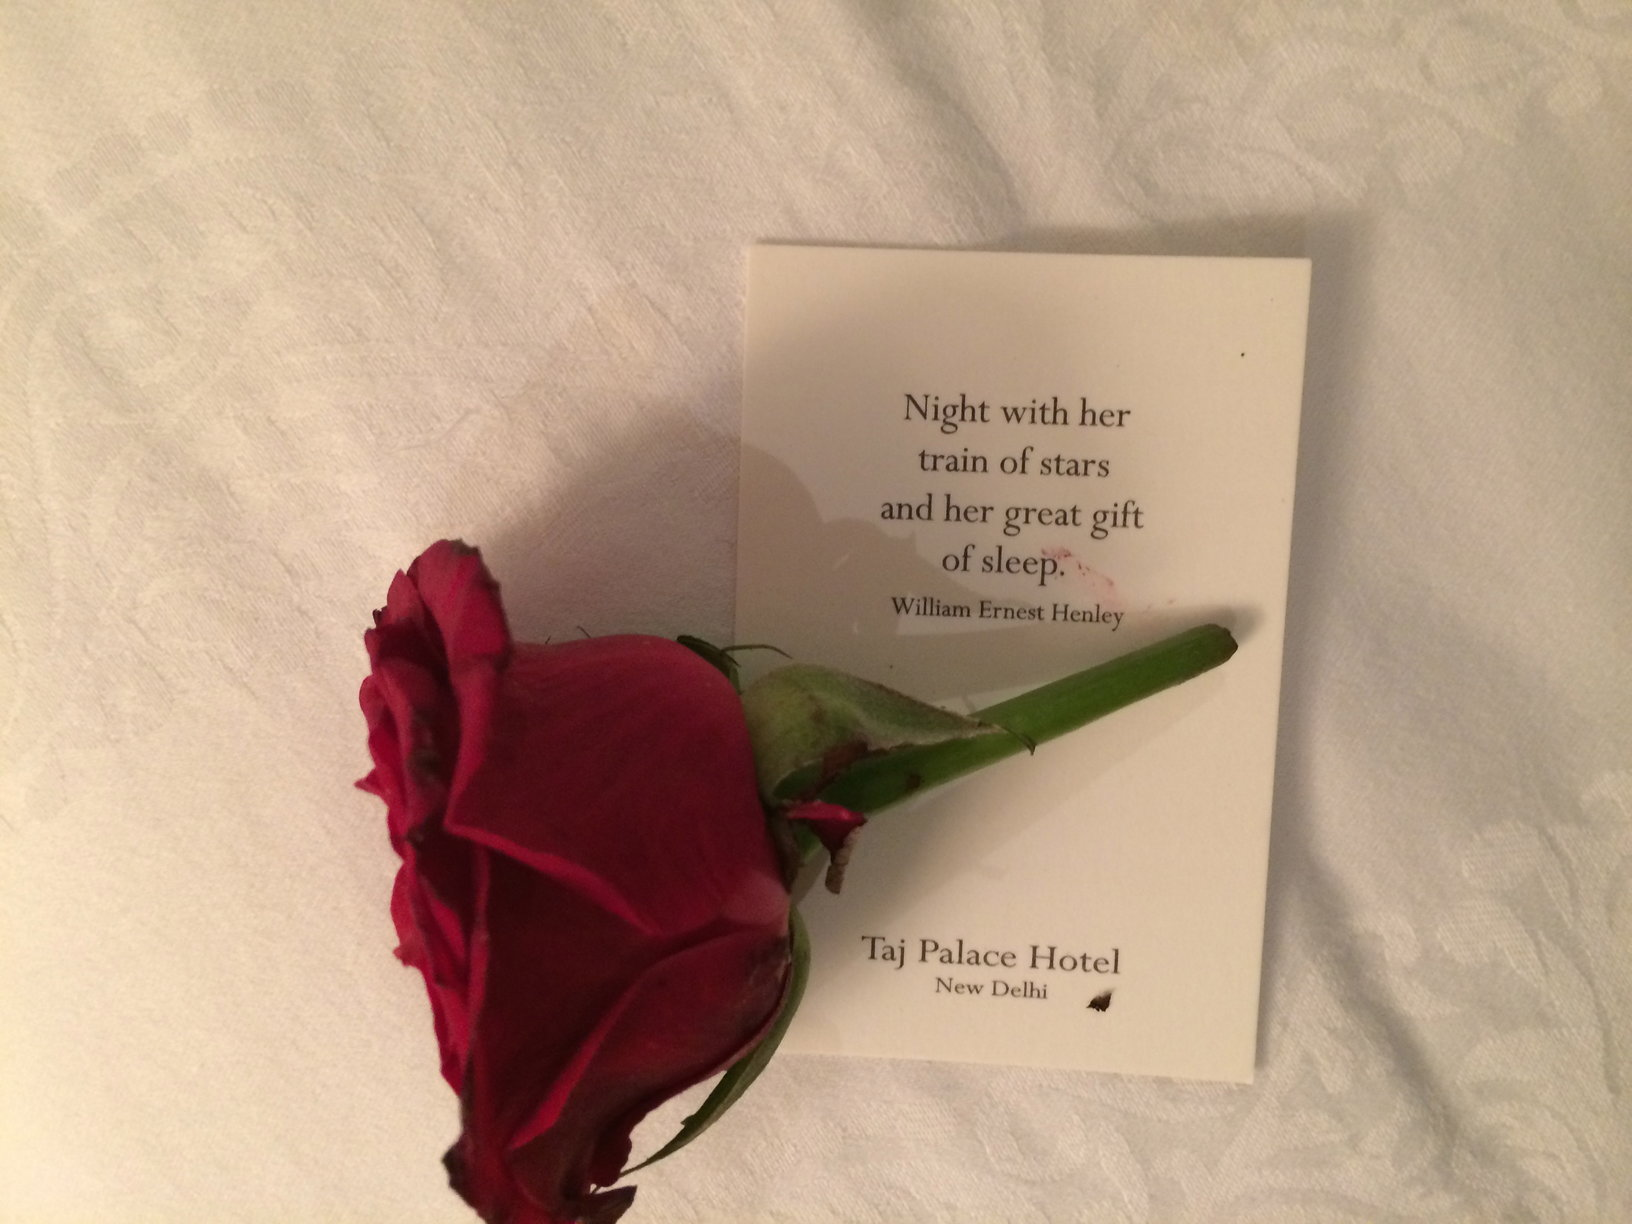 What a romantic note to help you spend a night alone.  Awww...